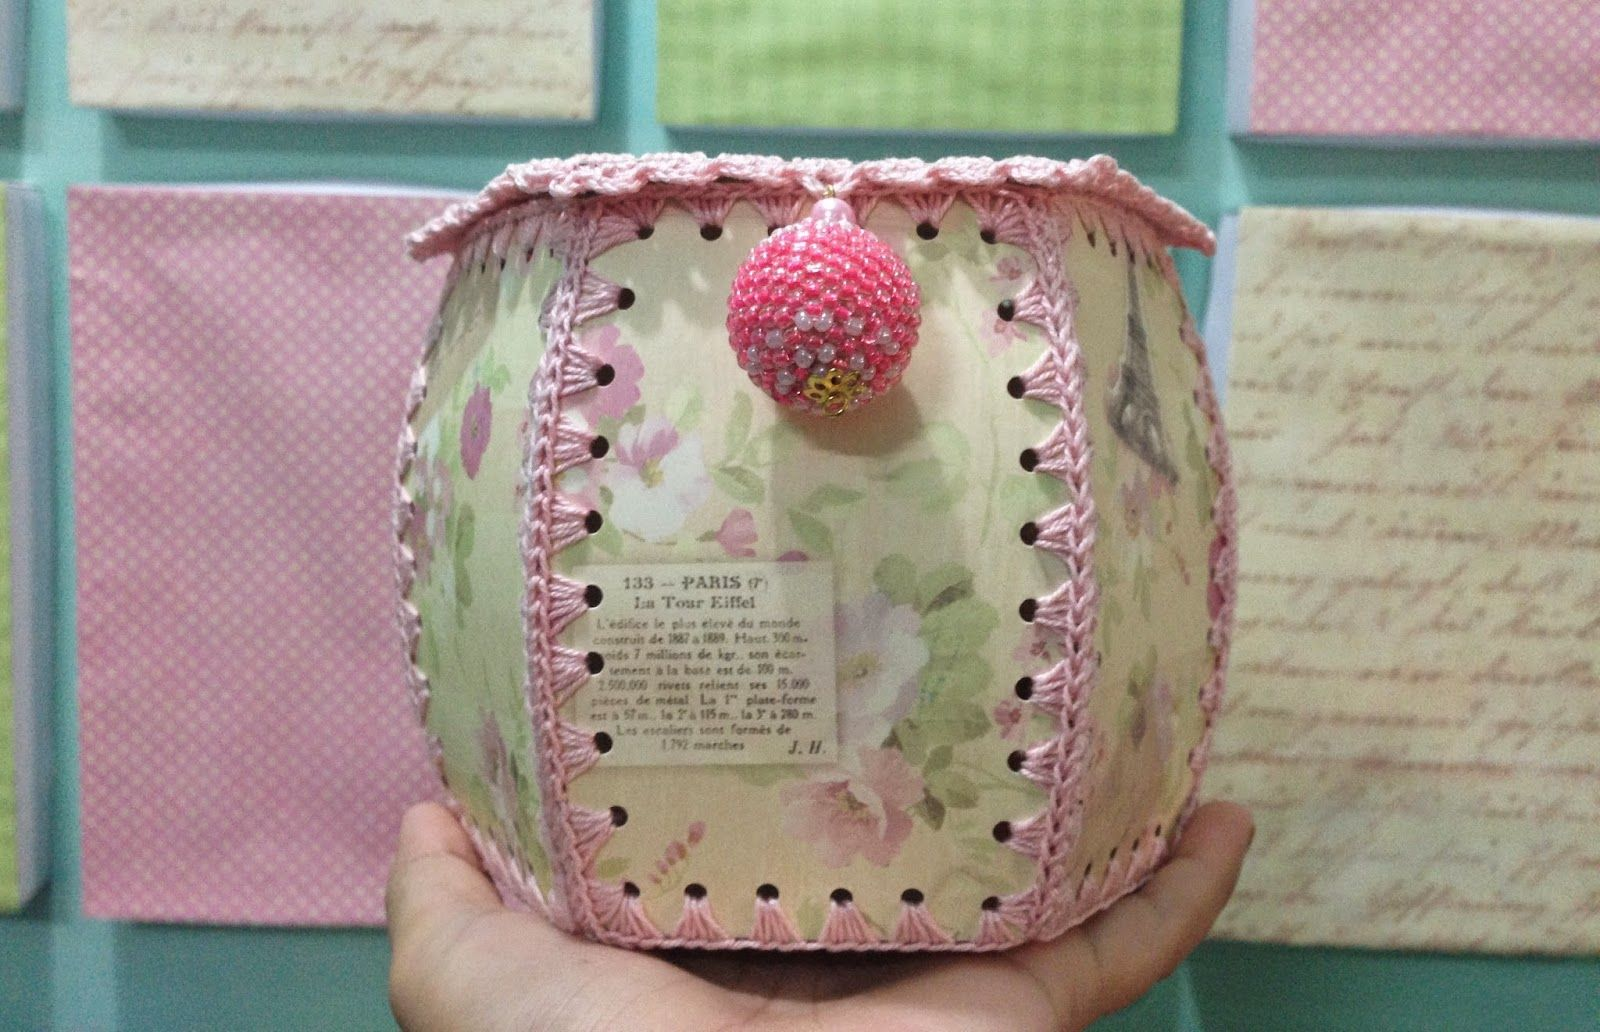 How to scrapbook a box - My Trinket Box Made From Recycled Card Board Scrapbook Paper And Crochet Thread This Is A Project That S Very Dear To Me It S Both A